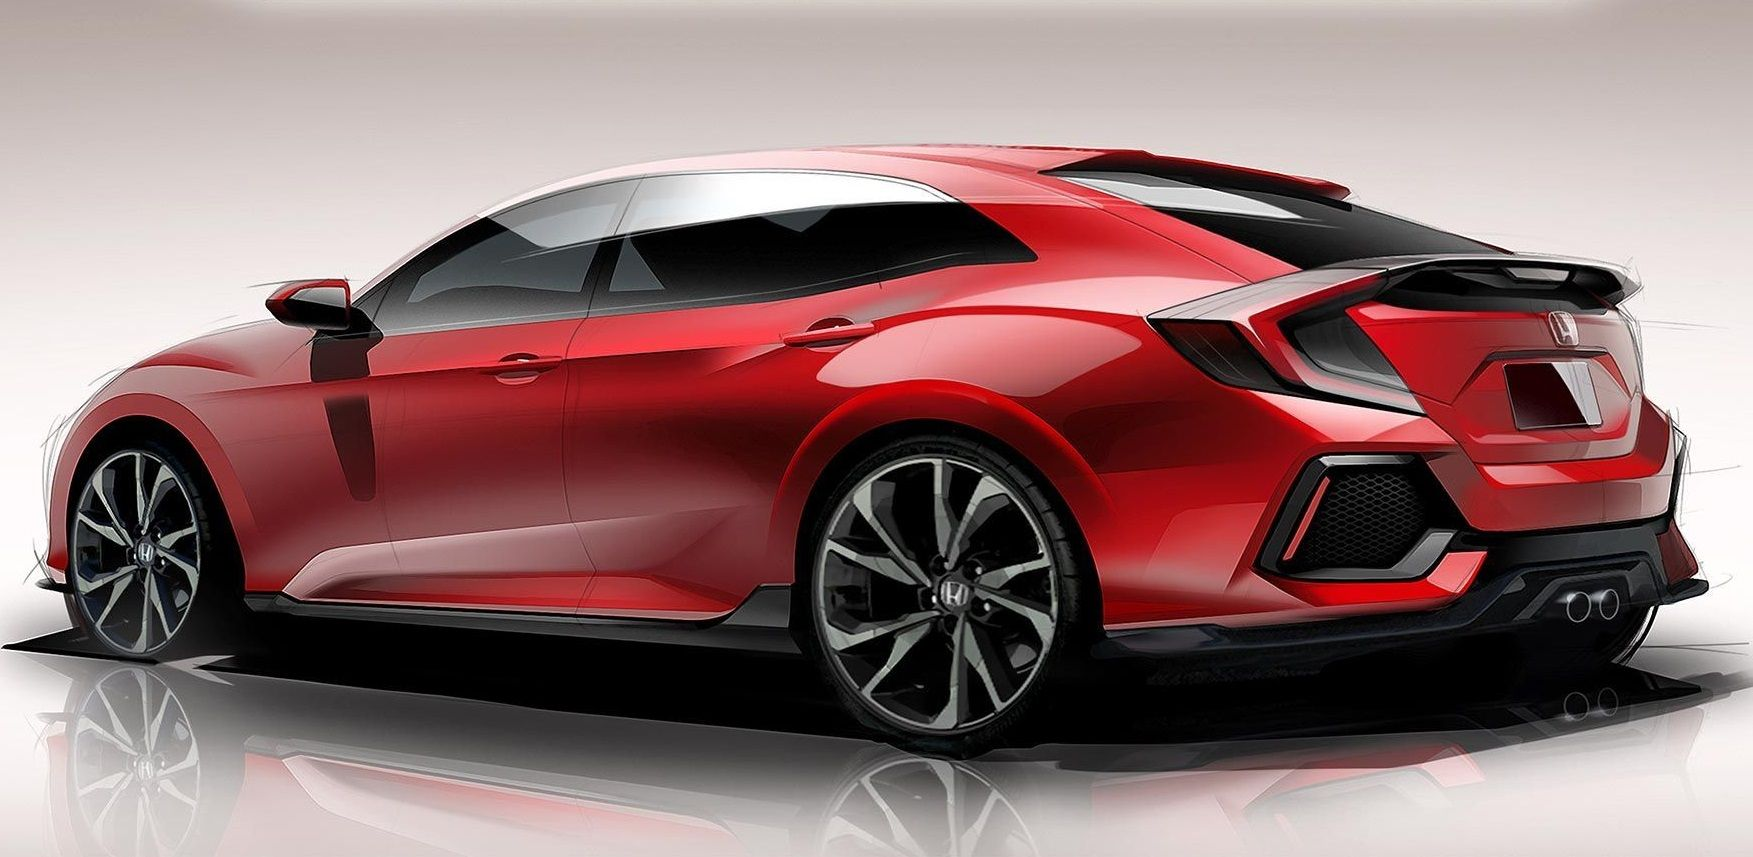 Pin by Fabio Watanabe on Car sketches in 2020 Civic